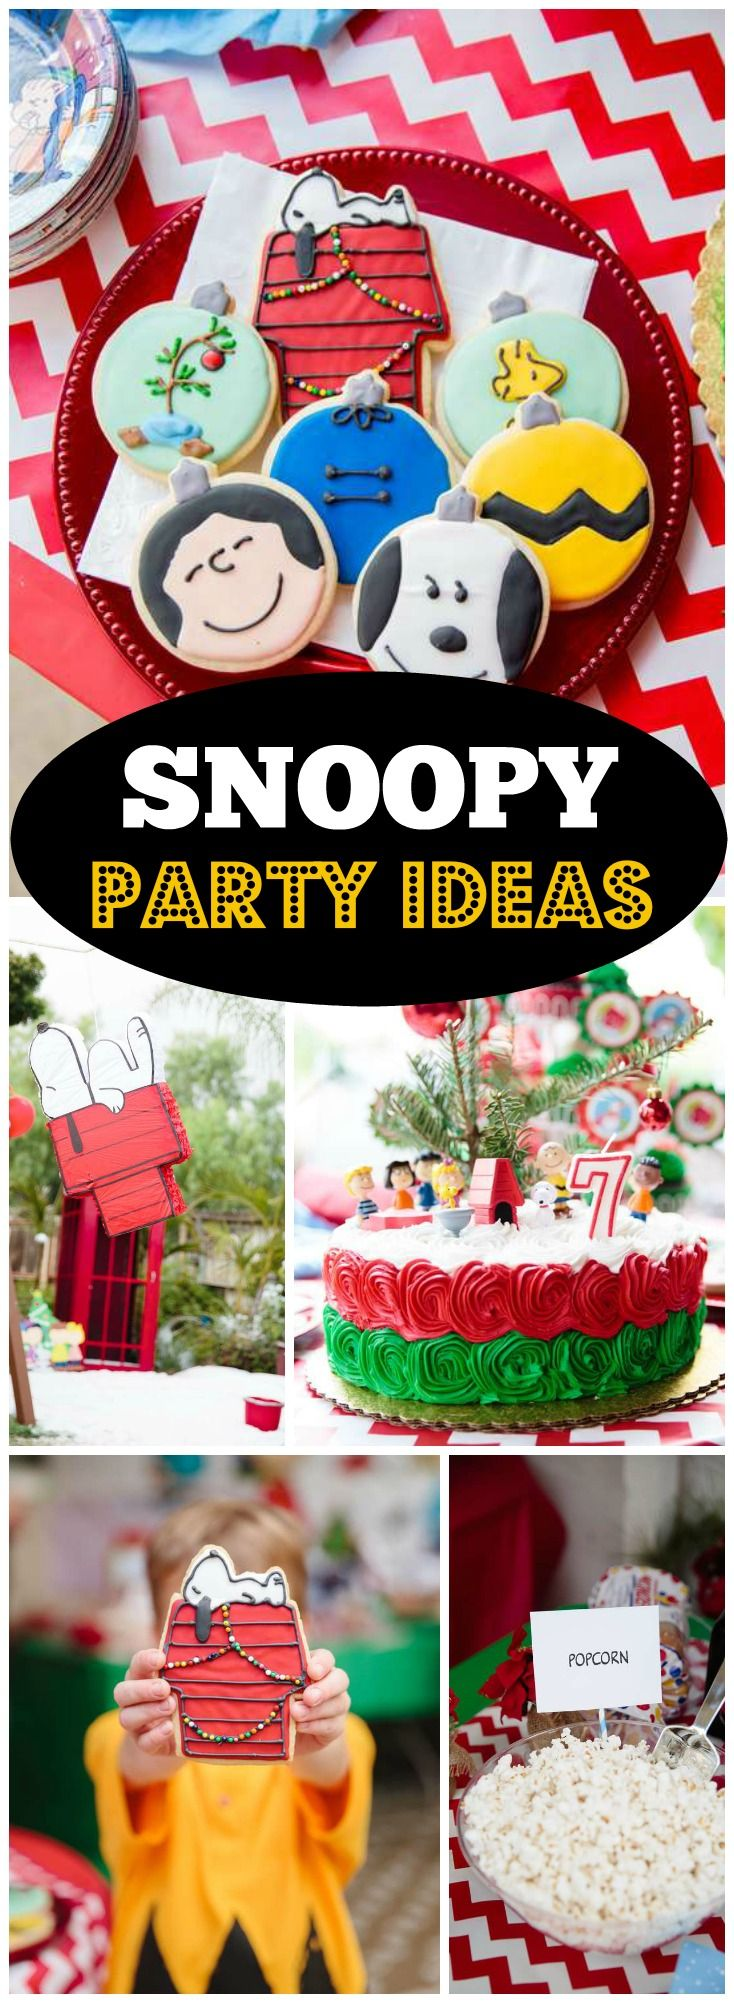 This party features ideas from A Charlie Brown Christmas! See more party ideas at CatchMyParty.com!